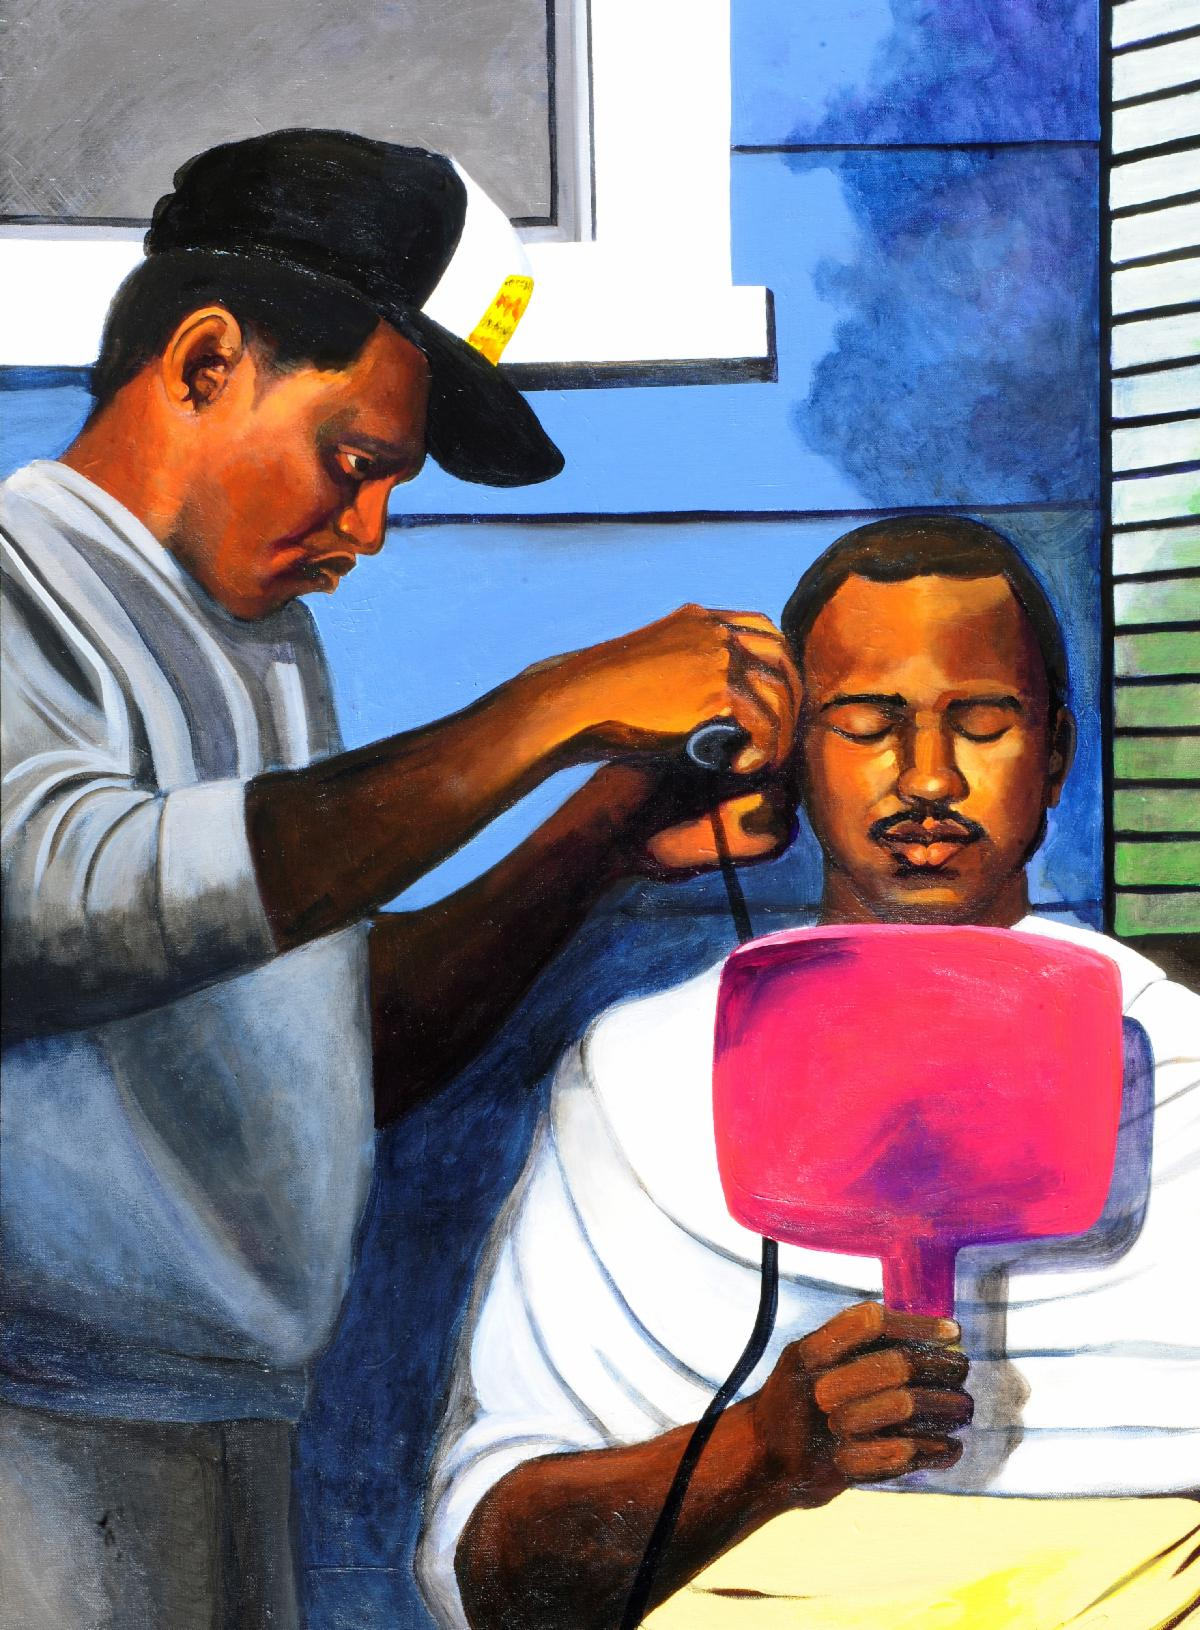 Backyard Barber Shop 40in x 30in acrylic on canvas 2019 Cousin Clifford the day before the wedding